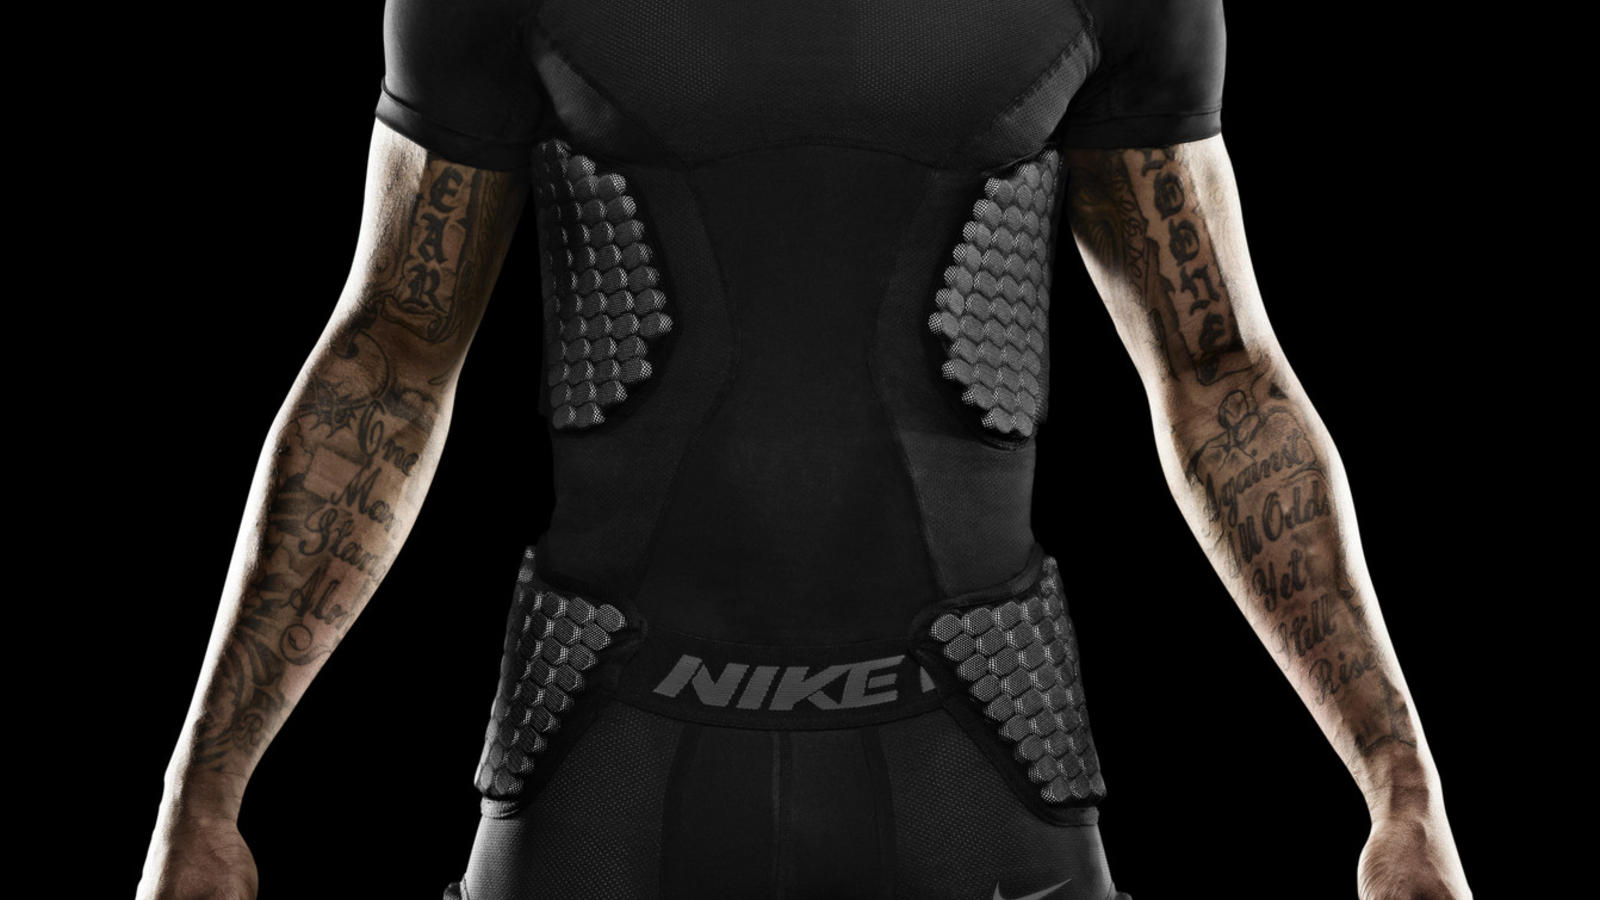 wallace-miami-nike-pro-combat-hyperstrong-baselayer-1